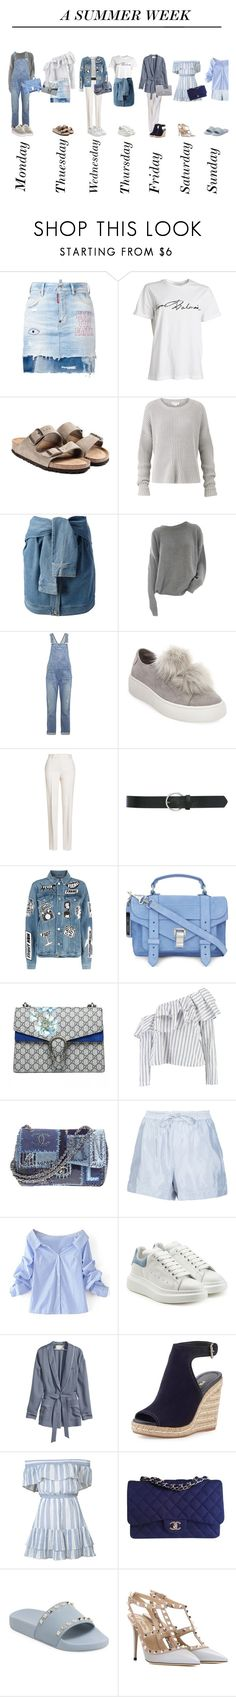 """A summer week"" by sascha-haarup on Polyvore featuring Dsquared2, Birkenstock, Amanda Wakeley, DKNY, Current/Elliott, Steve Madden, Jil Sander, M&Co, Frame and Proenza Schouler"